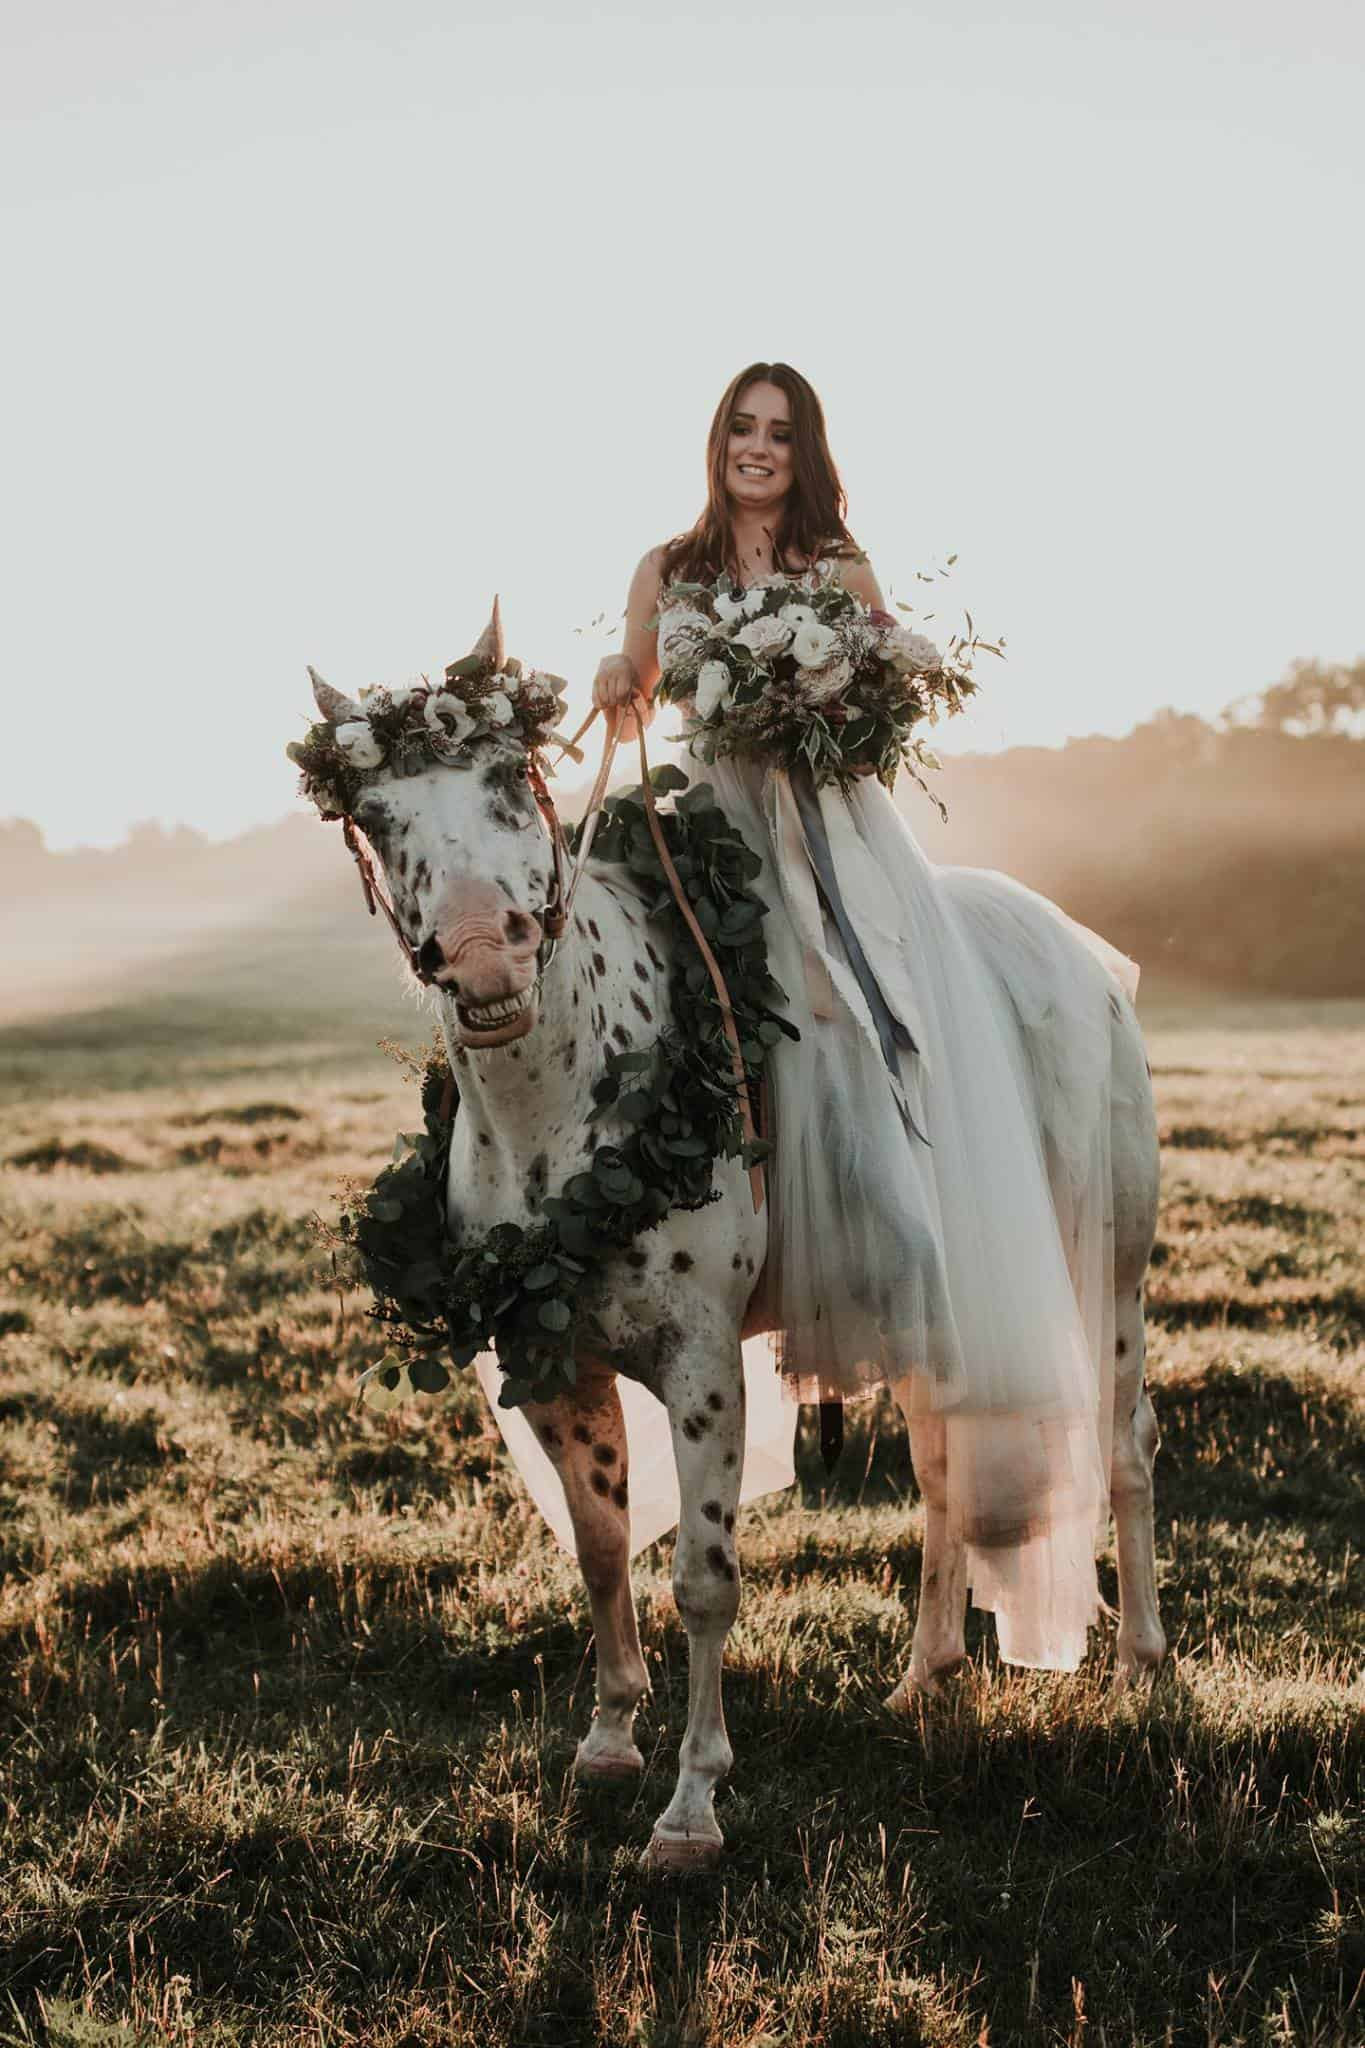 The best Bridal Portraits in 2018 that will last forever